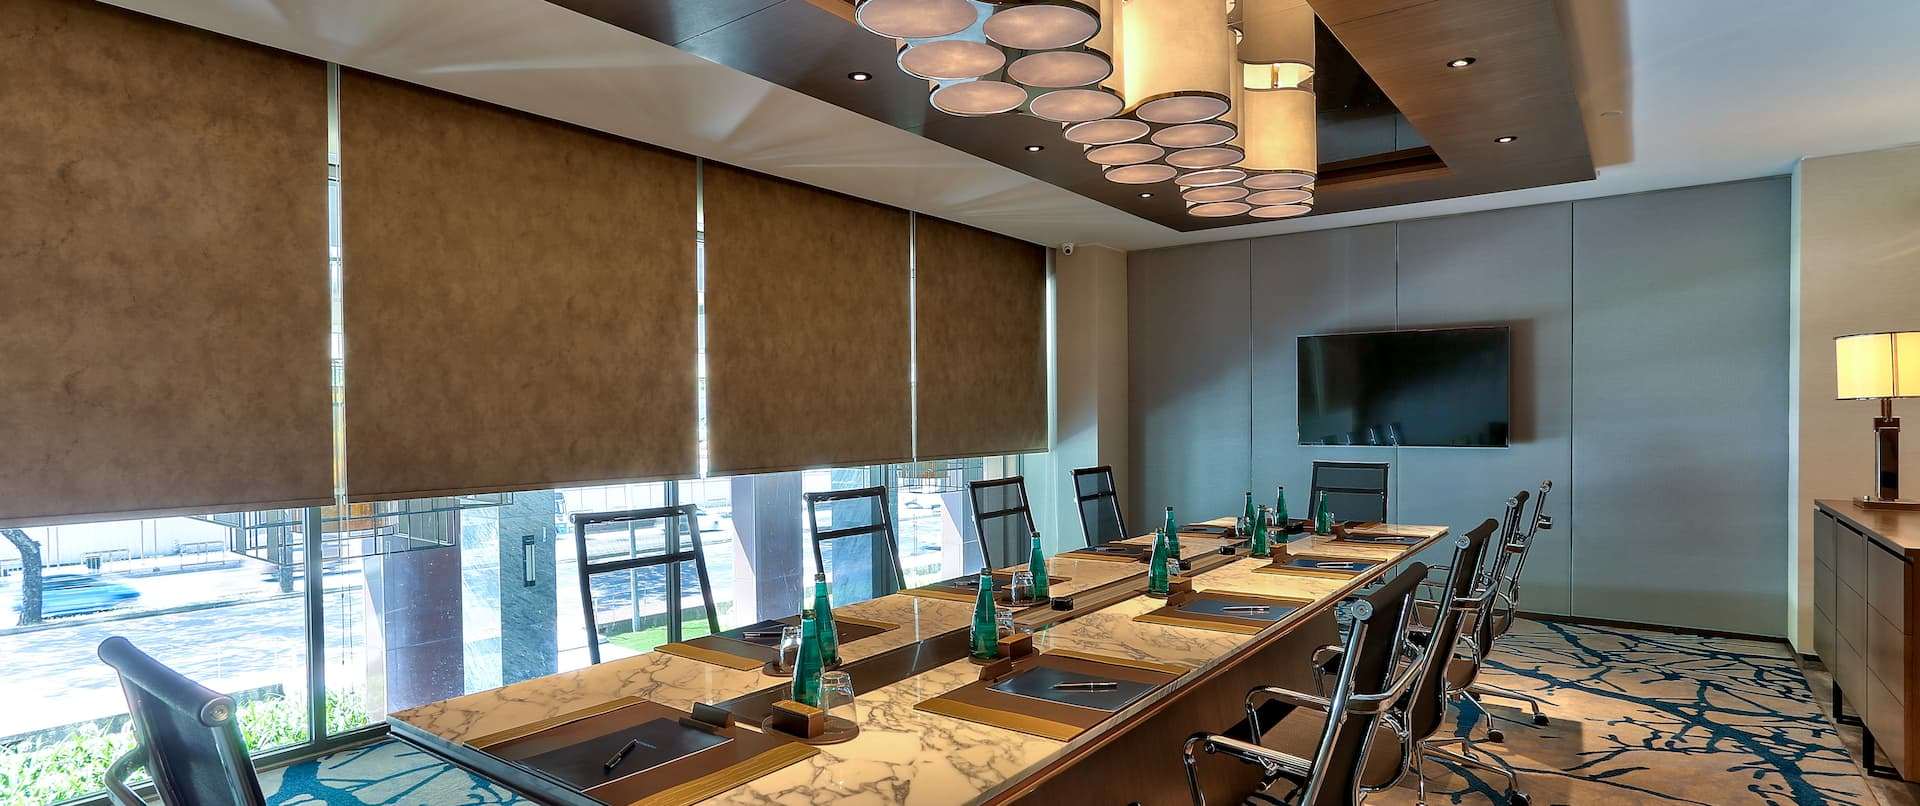 Meeting Room With Room Technology